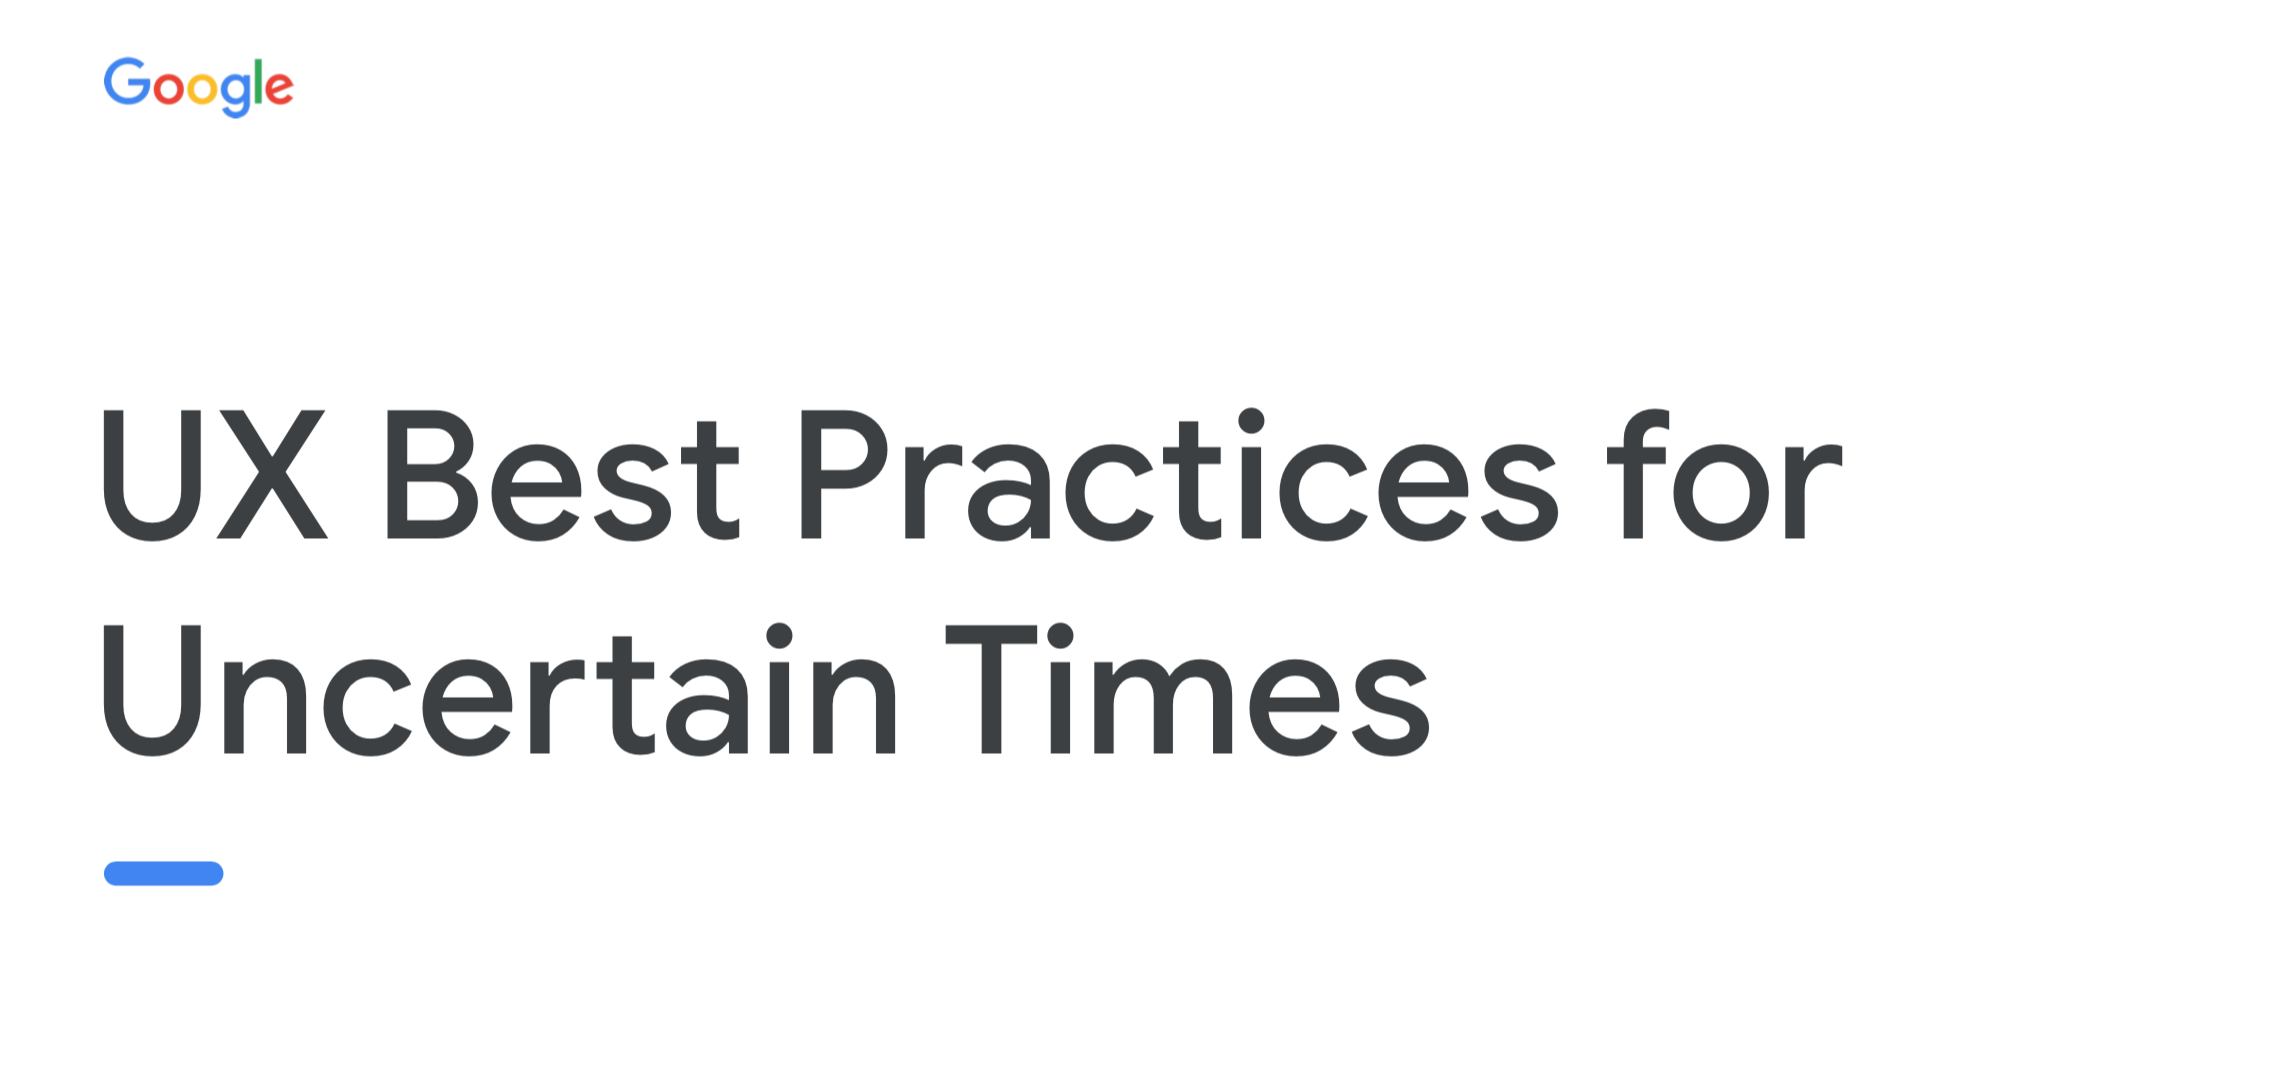 UX Best Practices for Uncertain Times